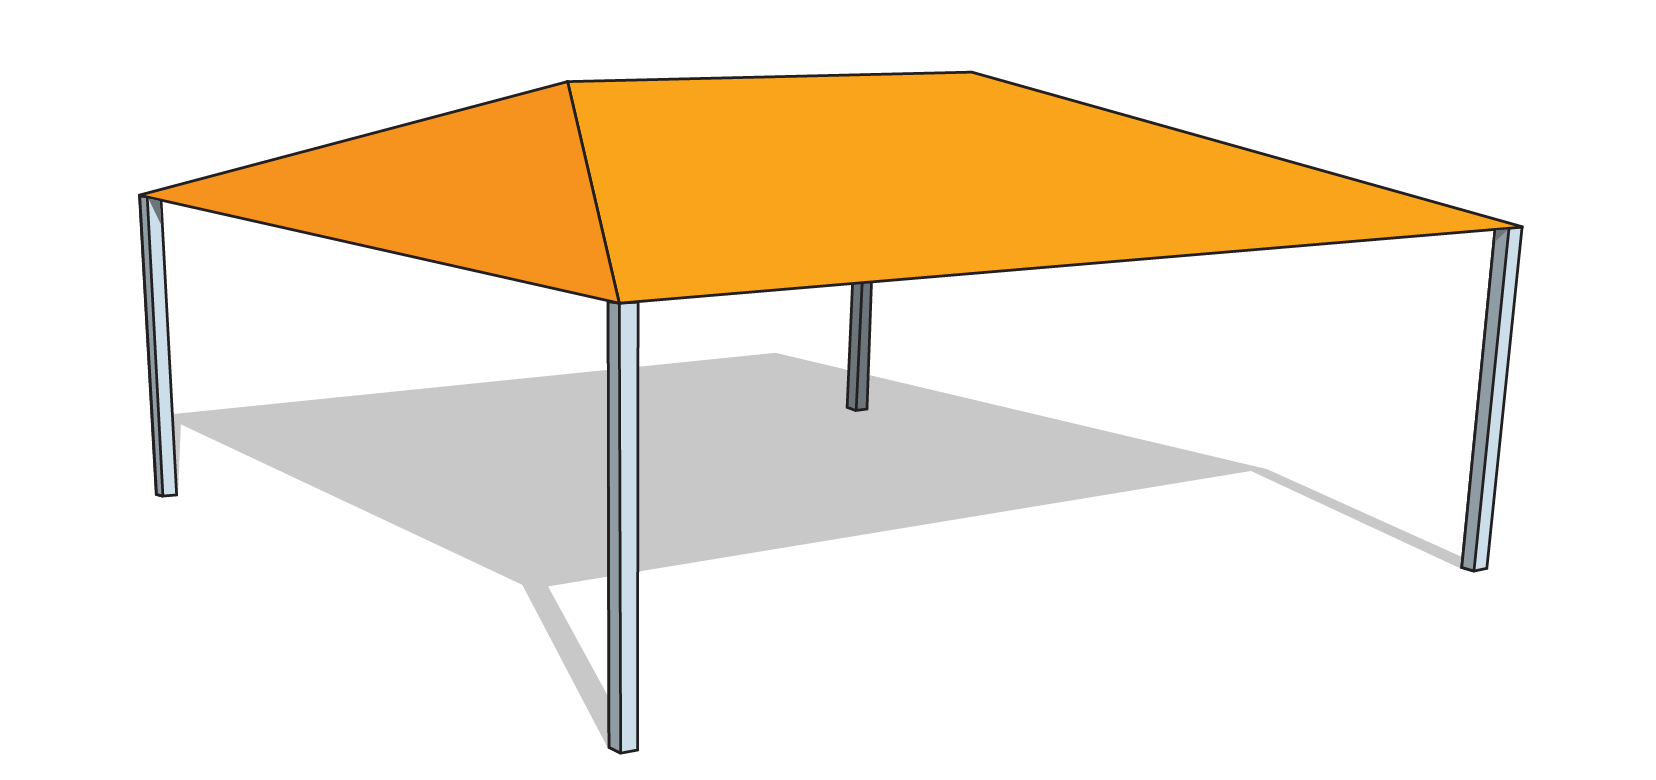 Hs 3030 Hip Shade Structure Financed Tenshon